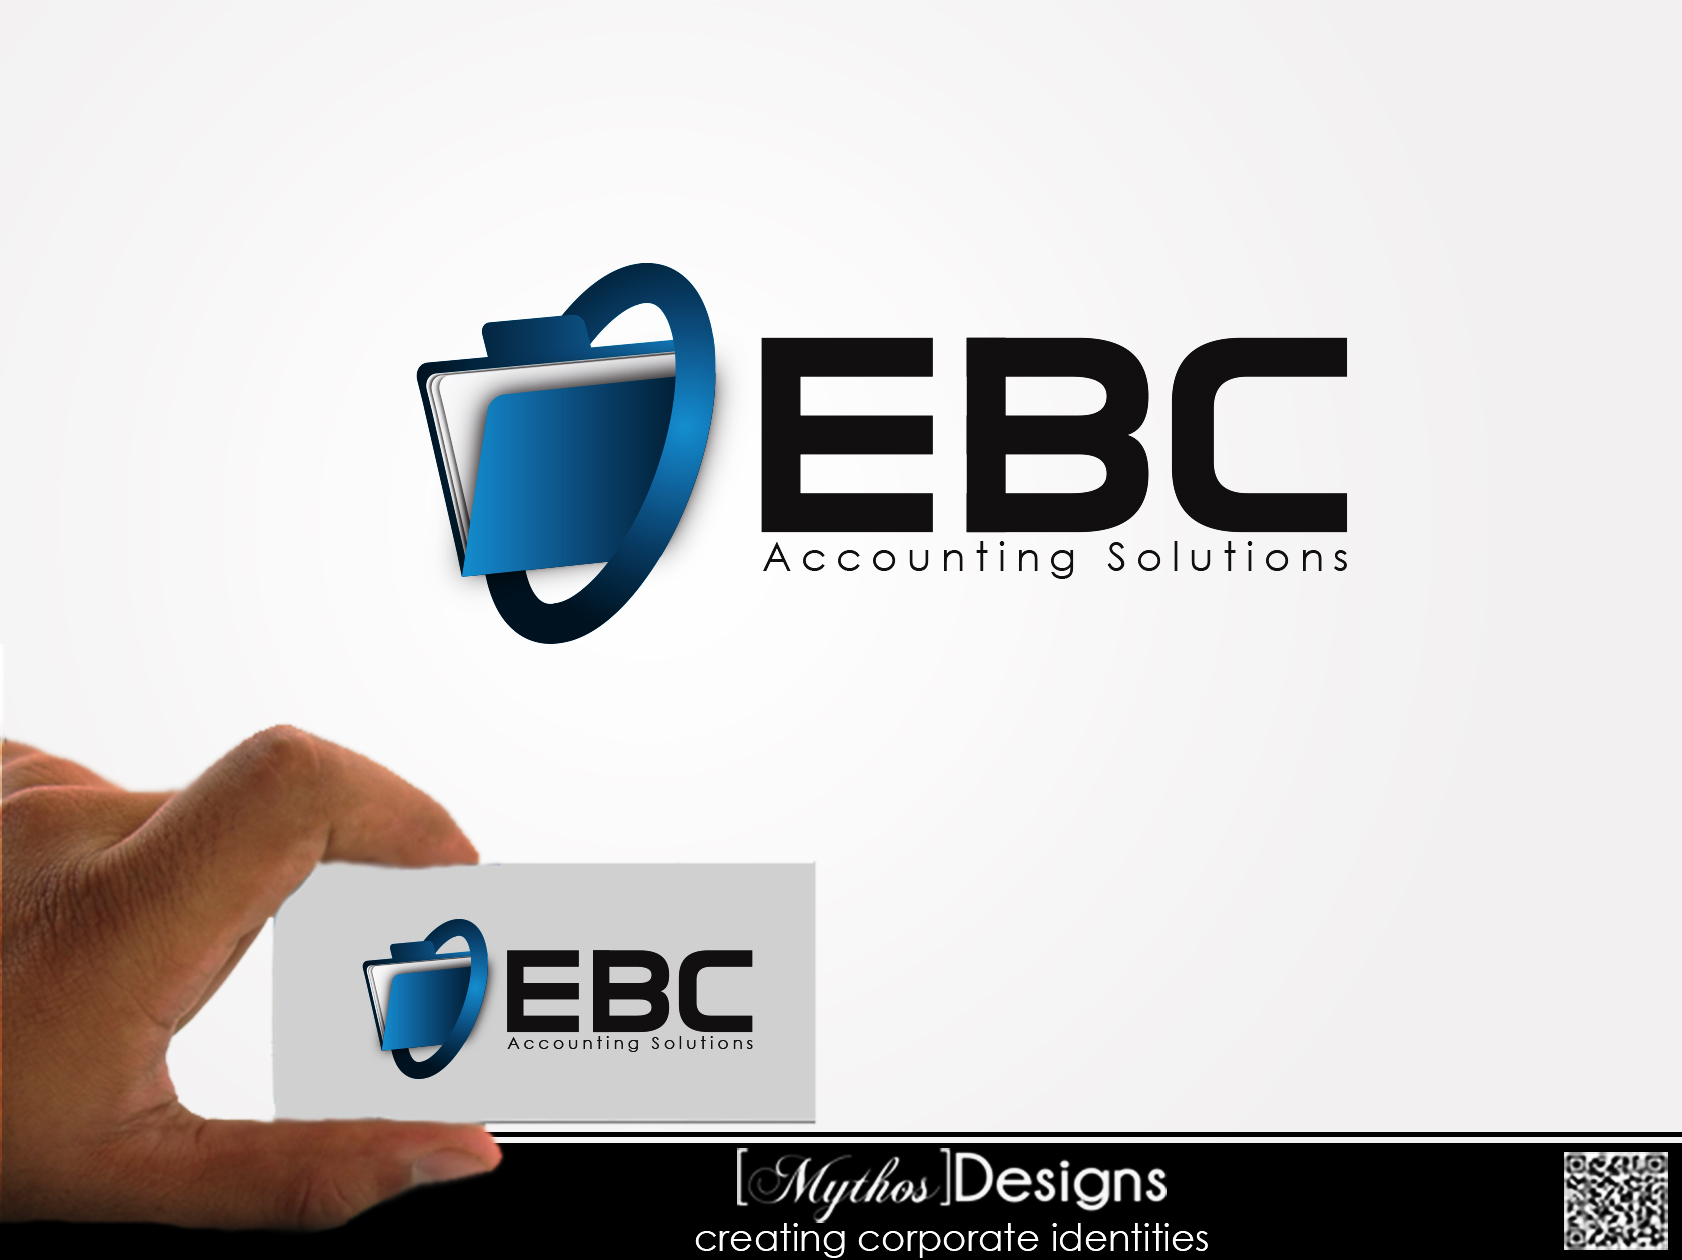 Logo Design by Mythos Designs - Entry No. 90 in the Logo Design Contest New Logo Design for EBC Accounting Solutions.